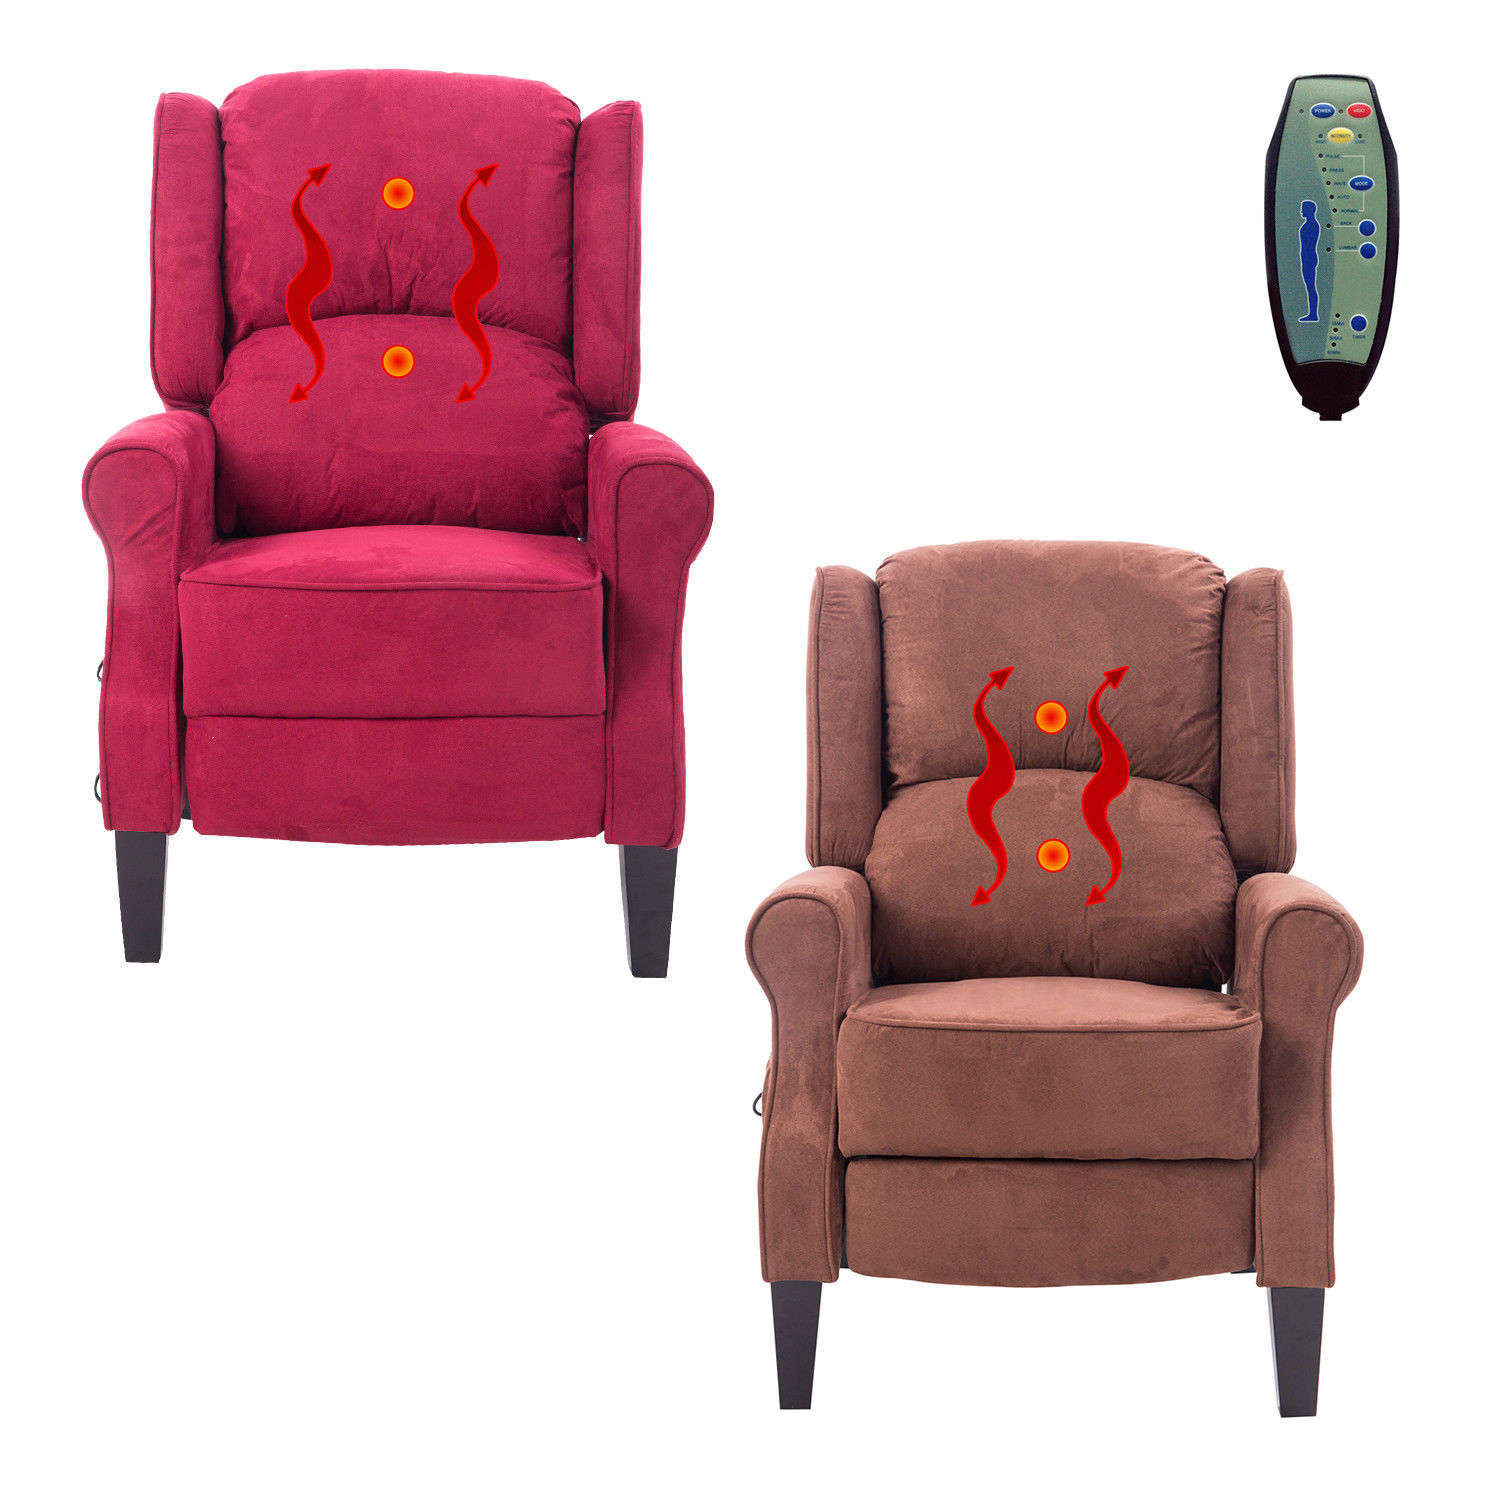 Superieur Deluxe Massage Recliner Chair Heated Sofa Ergonomic Lounge Suede W/ Control  New